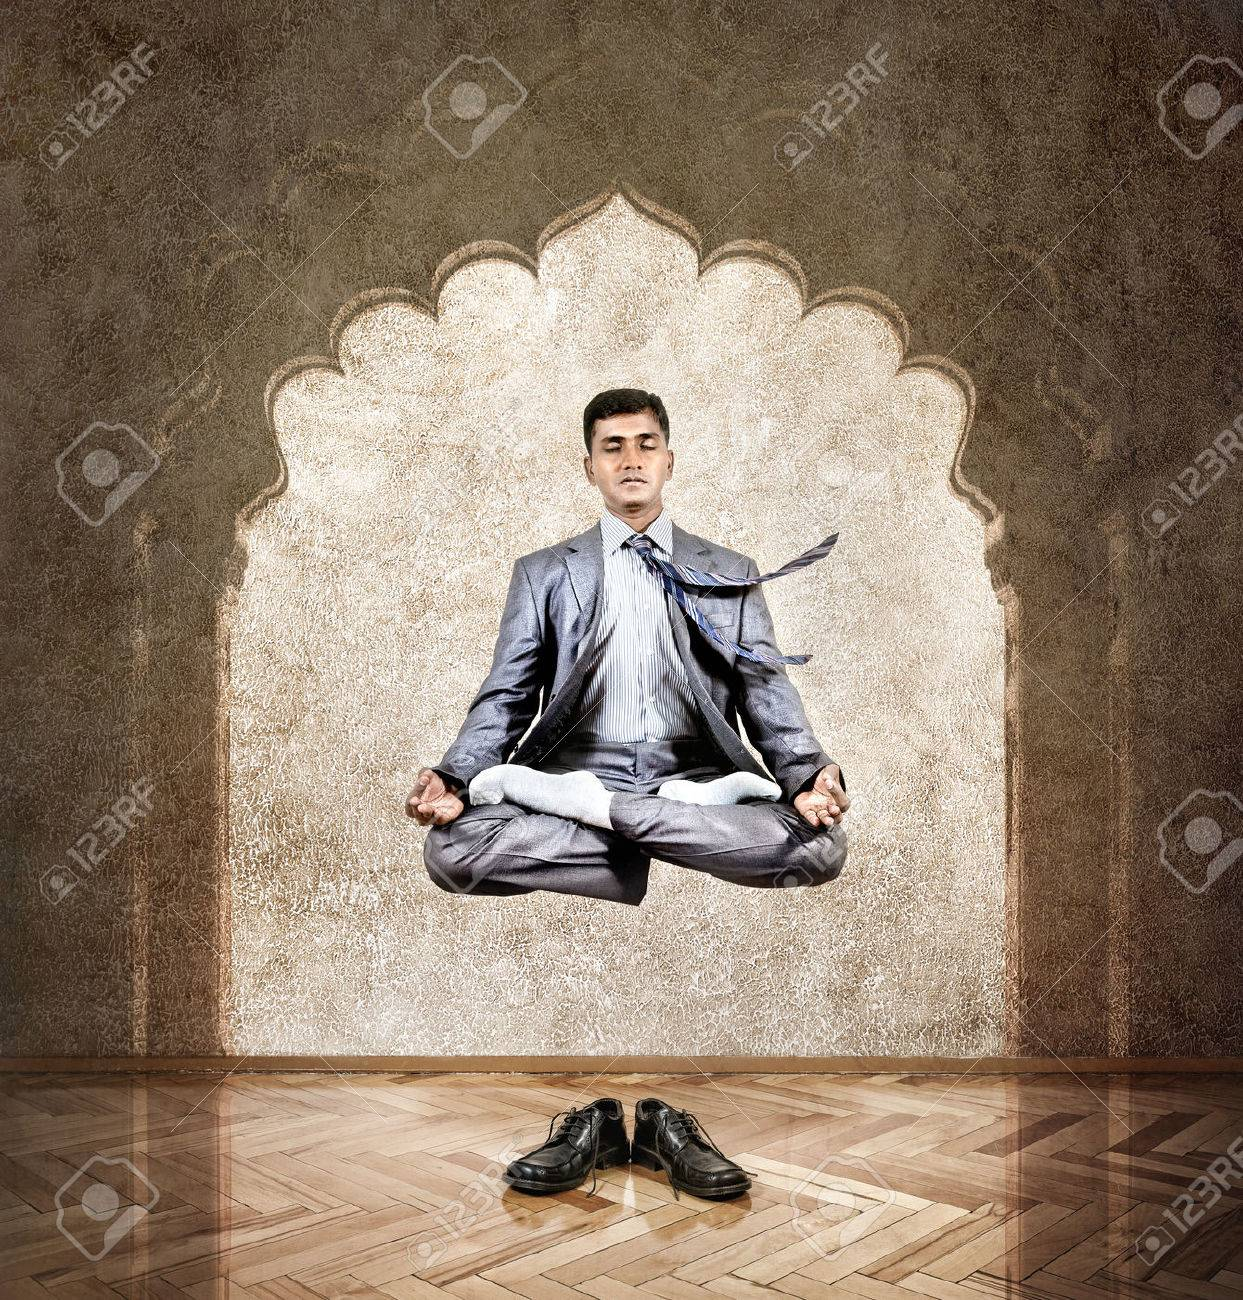 meditation office. indian businessman doing meditation in the air lotus pose at office with arch on